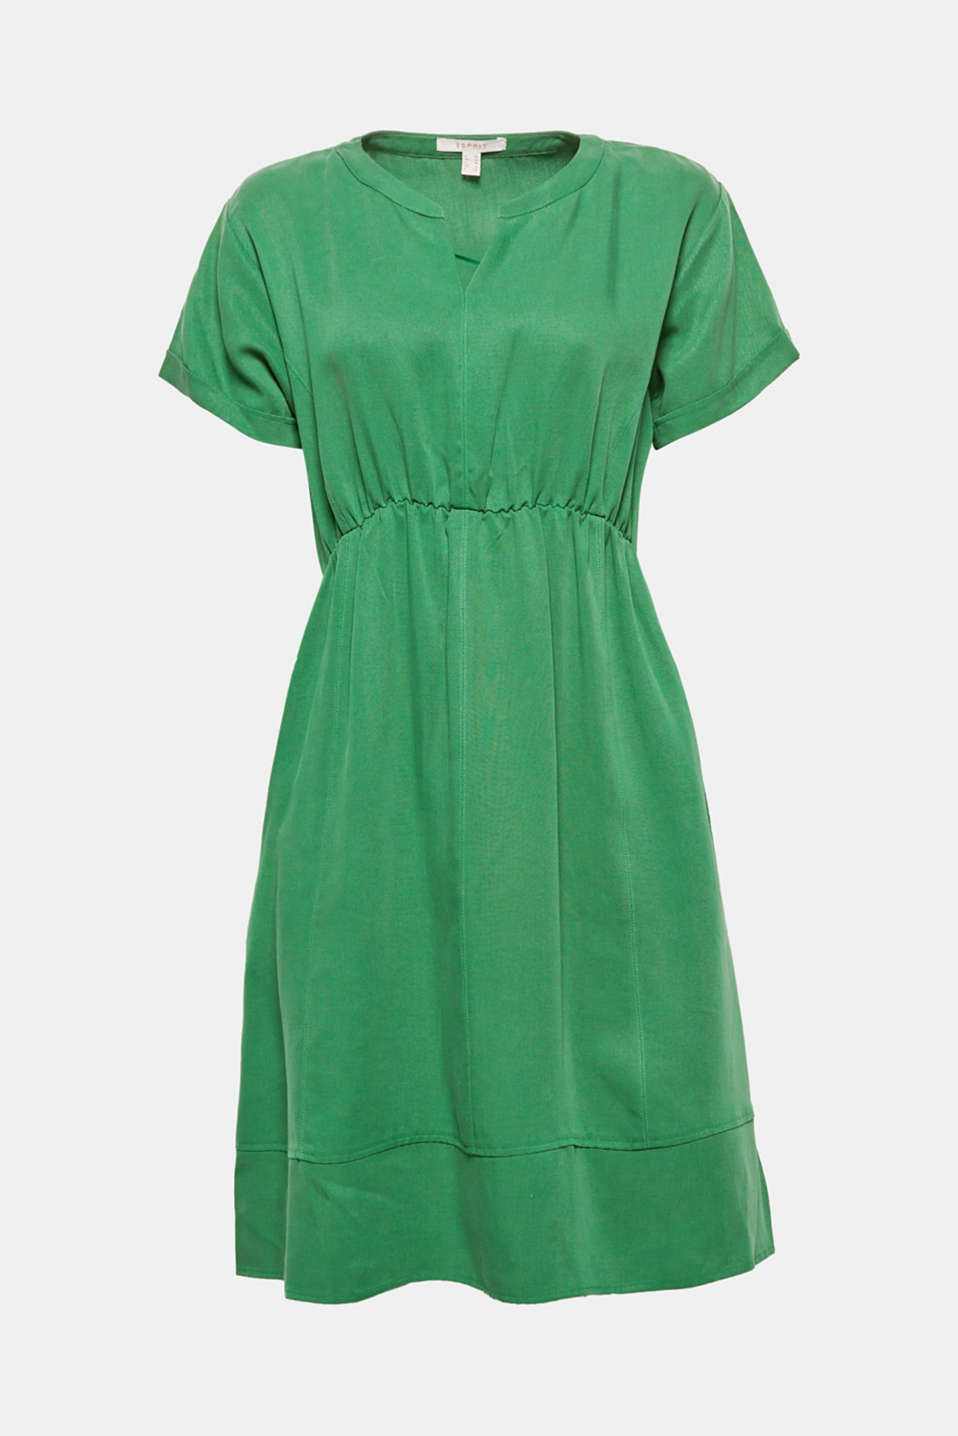 This lightweight dress is your perfect companion for relaxed, warm days thanks to its fashionable colours and casual cut.